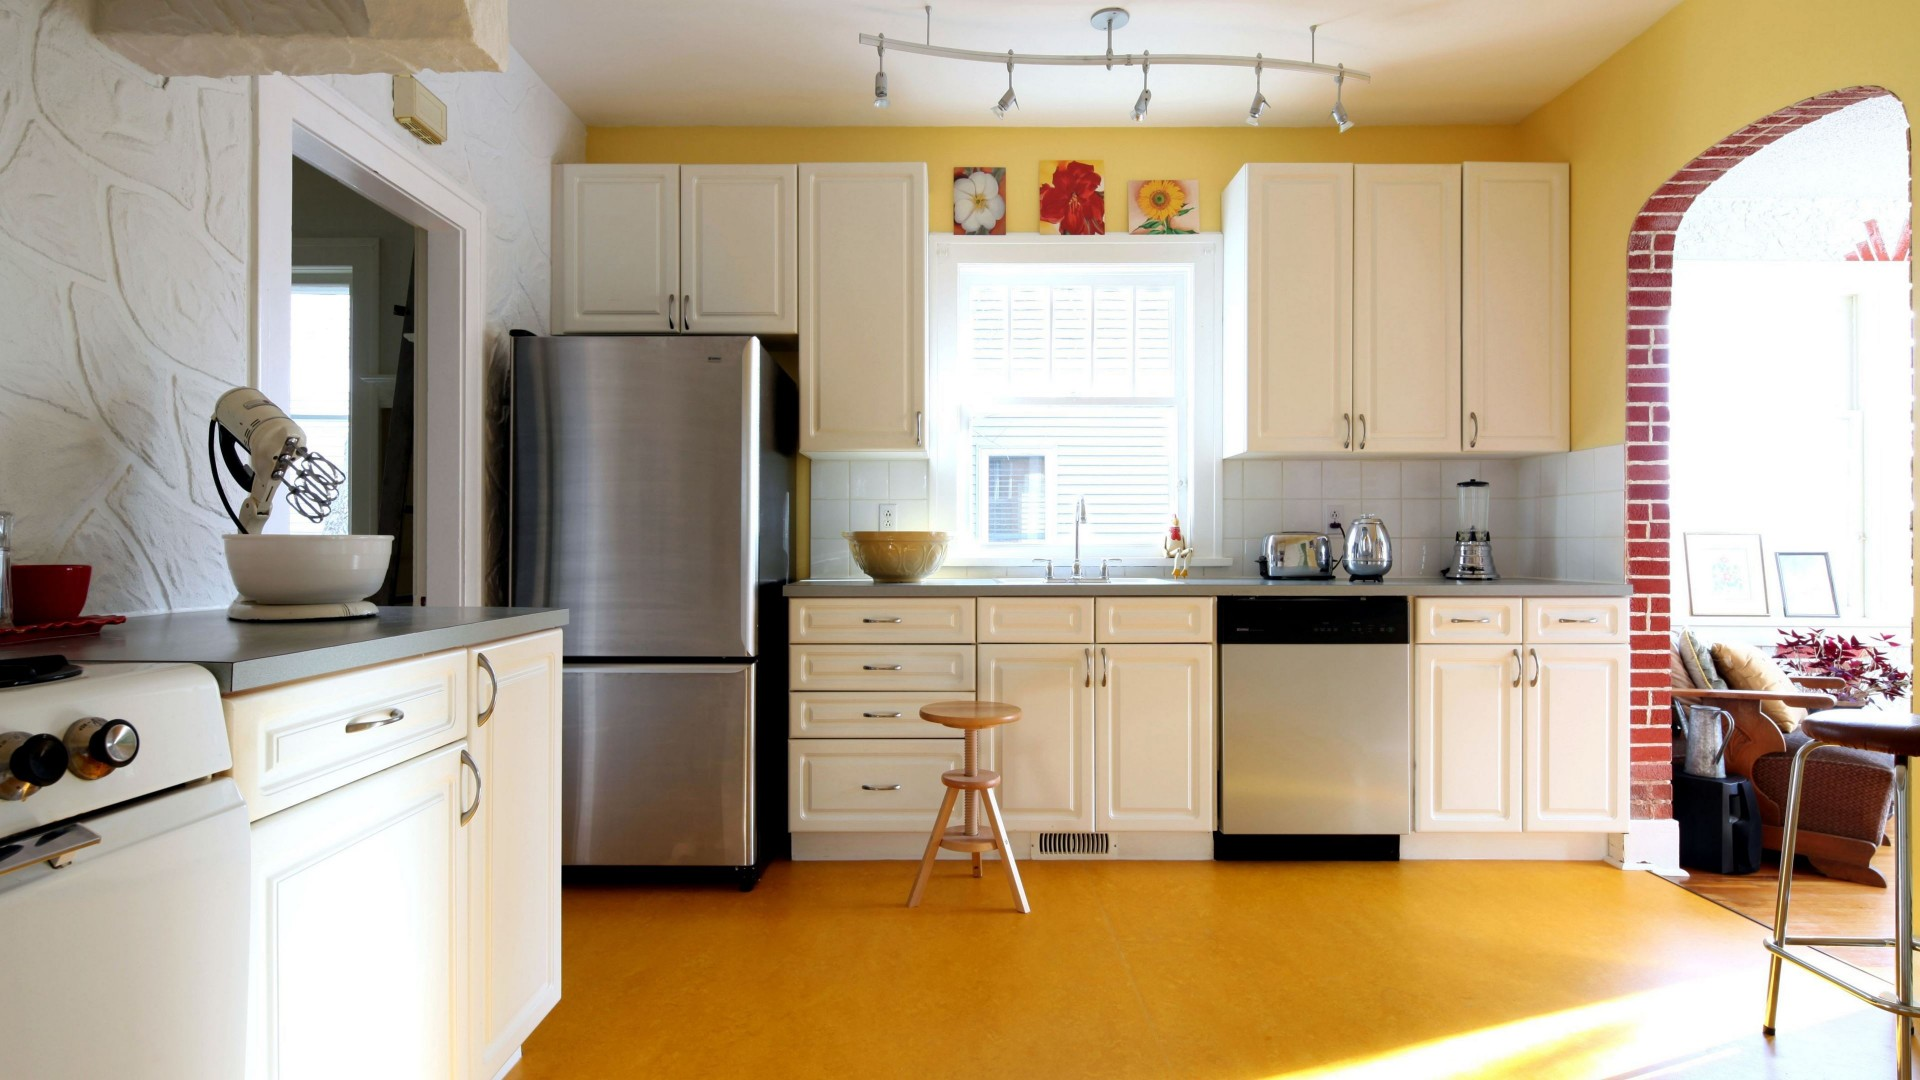 7 Simple Kitchen Ideas For A Beautiful Minimalist Home